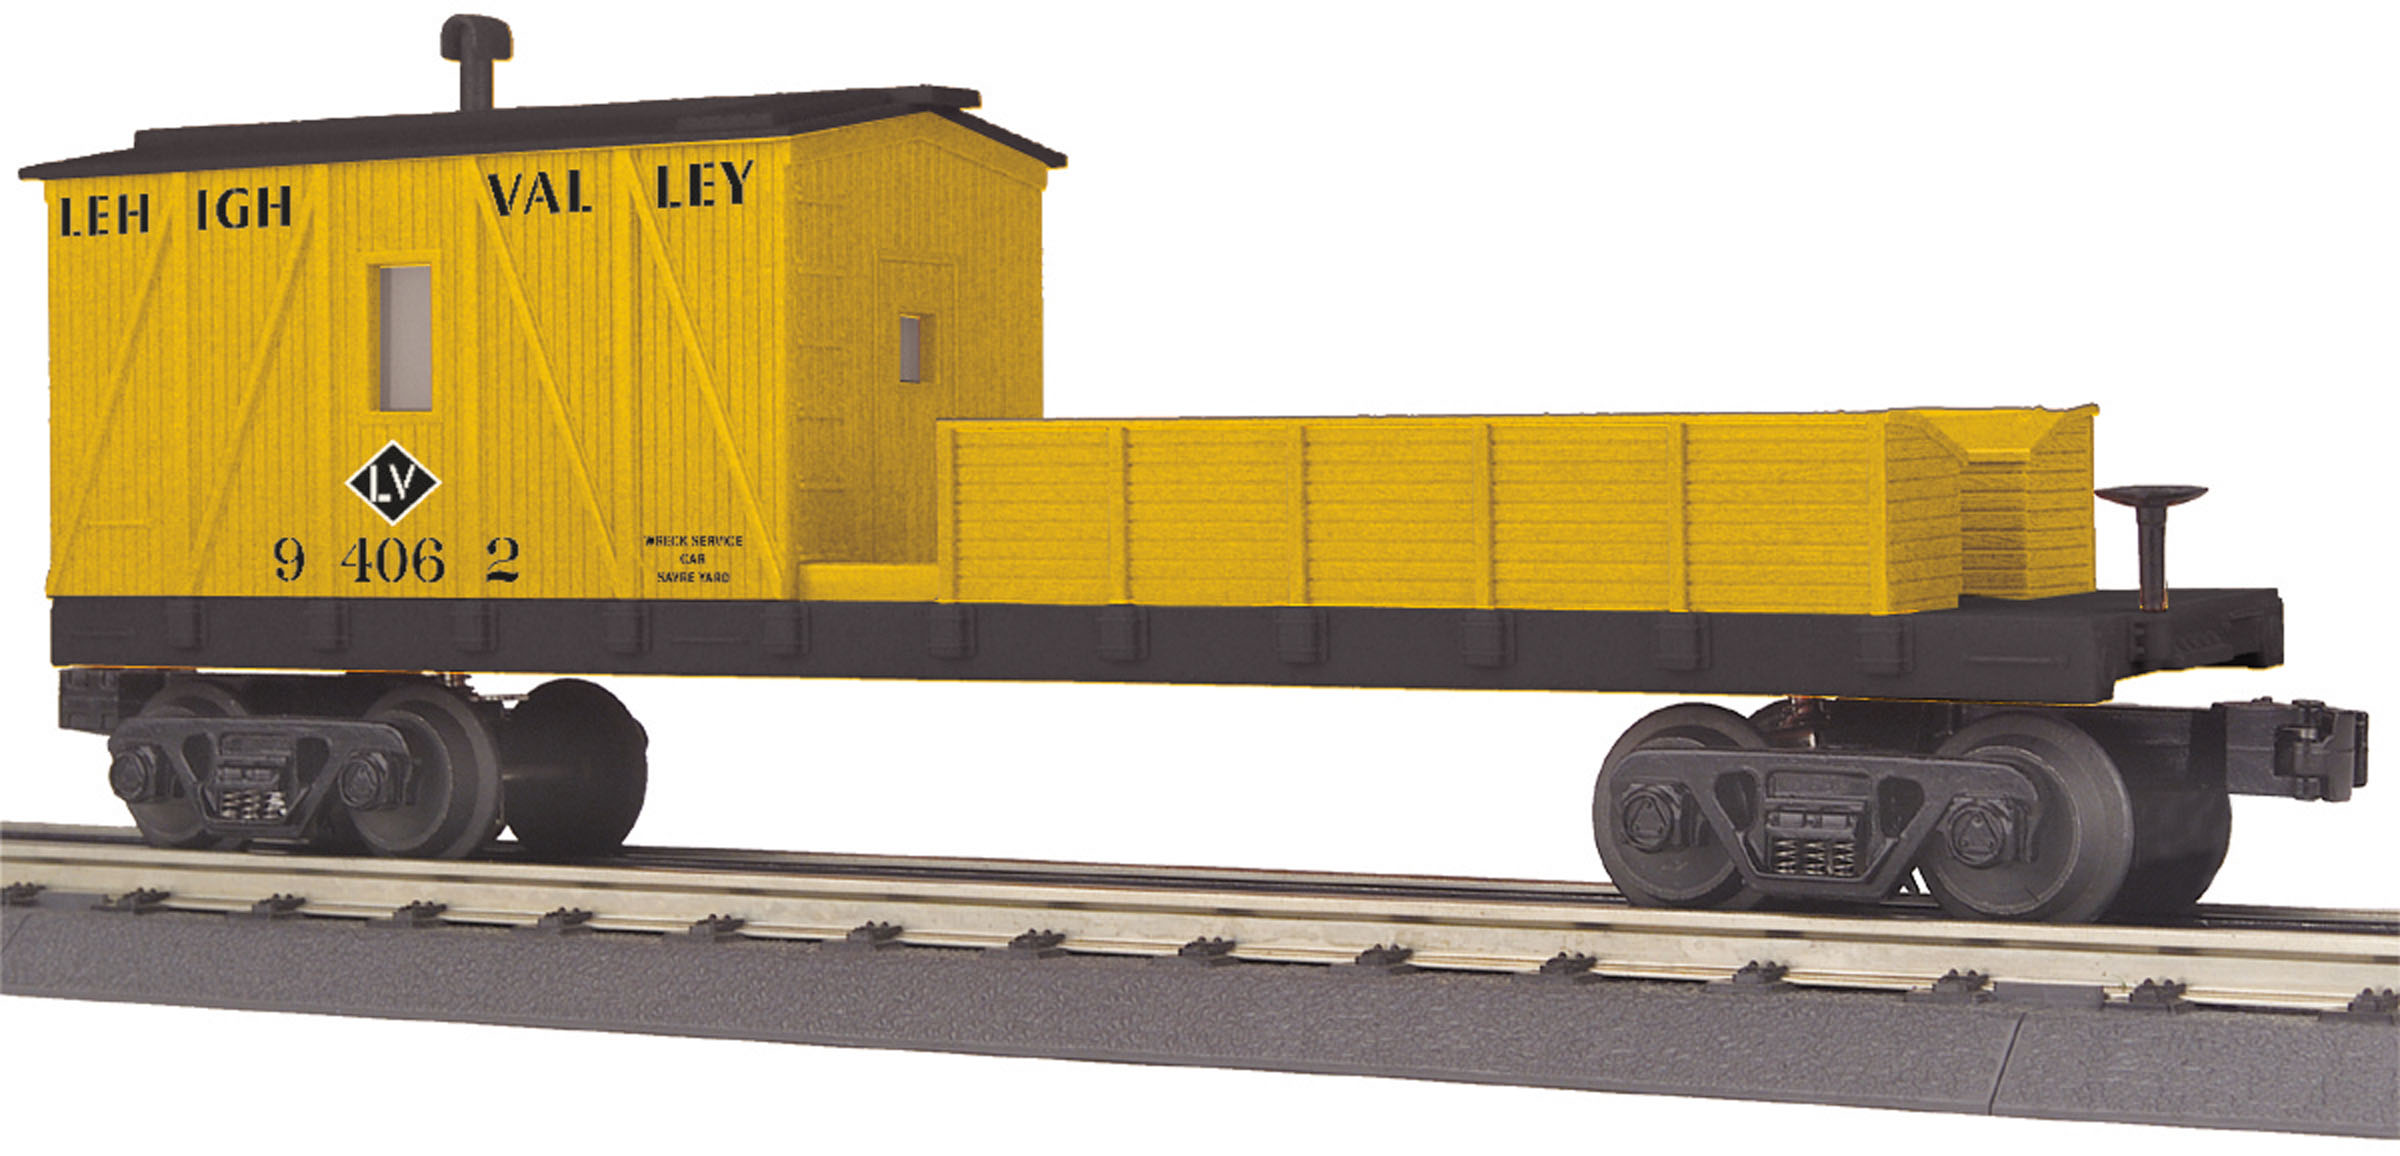 MTH 30-79441 O LV Crane Tender This is MTH 30-79441 O LV Crane Tender. Lehigh Valley, car number: 94062. The crane tender had two jobs: to protect the crane's boom and enable it to be coupled with other cars on the way to a wreck site, and to carry the tools, chains, slings and other gear needed to clear a wreck. Unlike the crane itself, which was a precision piece of gear made by a specialized company, the crane tender was usually a home-built affair, cobbled together from whatever a railroad's shop crew had lying around. Our model represents a typical such car, built from an older flatcar and part of an obsolete or wreck-damaged outside-braced wooden box car, now functioning as an equipment shed.The rest of a typical wreck train usually had the same hand-me-down look. Passenger and freight cars no longer fit for revenue service were recycled into crew, equipment, and tool cars for wreck and maintenance of way service.High quality, traditionally sized RailKing Freight Cars provide detailed bodies and colorful paint schemes for the O Gauge railroader. MTH makes an enormous variety of RailKing Freight Cars, including many different car types and roadnames. No matter what era or part of the country you are modeling, RailKing is sure to have something for you.Its key features are:Intricately detailed durable ABS bodyMetal wheels and axlesDie-cast 4-wheel trucksOperating die-cast metal couplersColorful, attractive paint schemesDecorative brake wheelsFast-angle wheel setsNeedle-point axlesOperating interior lightingUnit measures: 11 1/2 x 2 5/16 x 4Operates on O-27 curvesCondition: Factory New (C-9All original; unused; factory rubs and evidence of handling, shipping and factory test run.Standards for all toy train related accessory items apply to the visual appearance of the item and do not consider the operating functionality of the equipment.Condition and Grading Standards are subjective, at best, and are intended to act as a gu